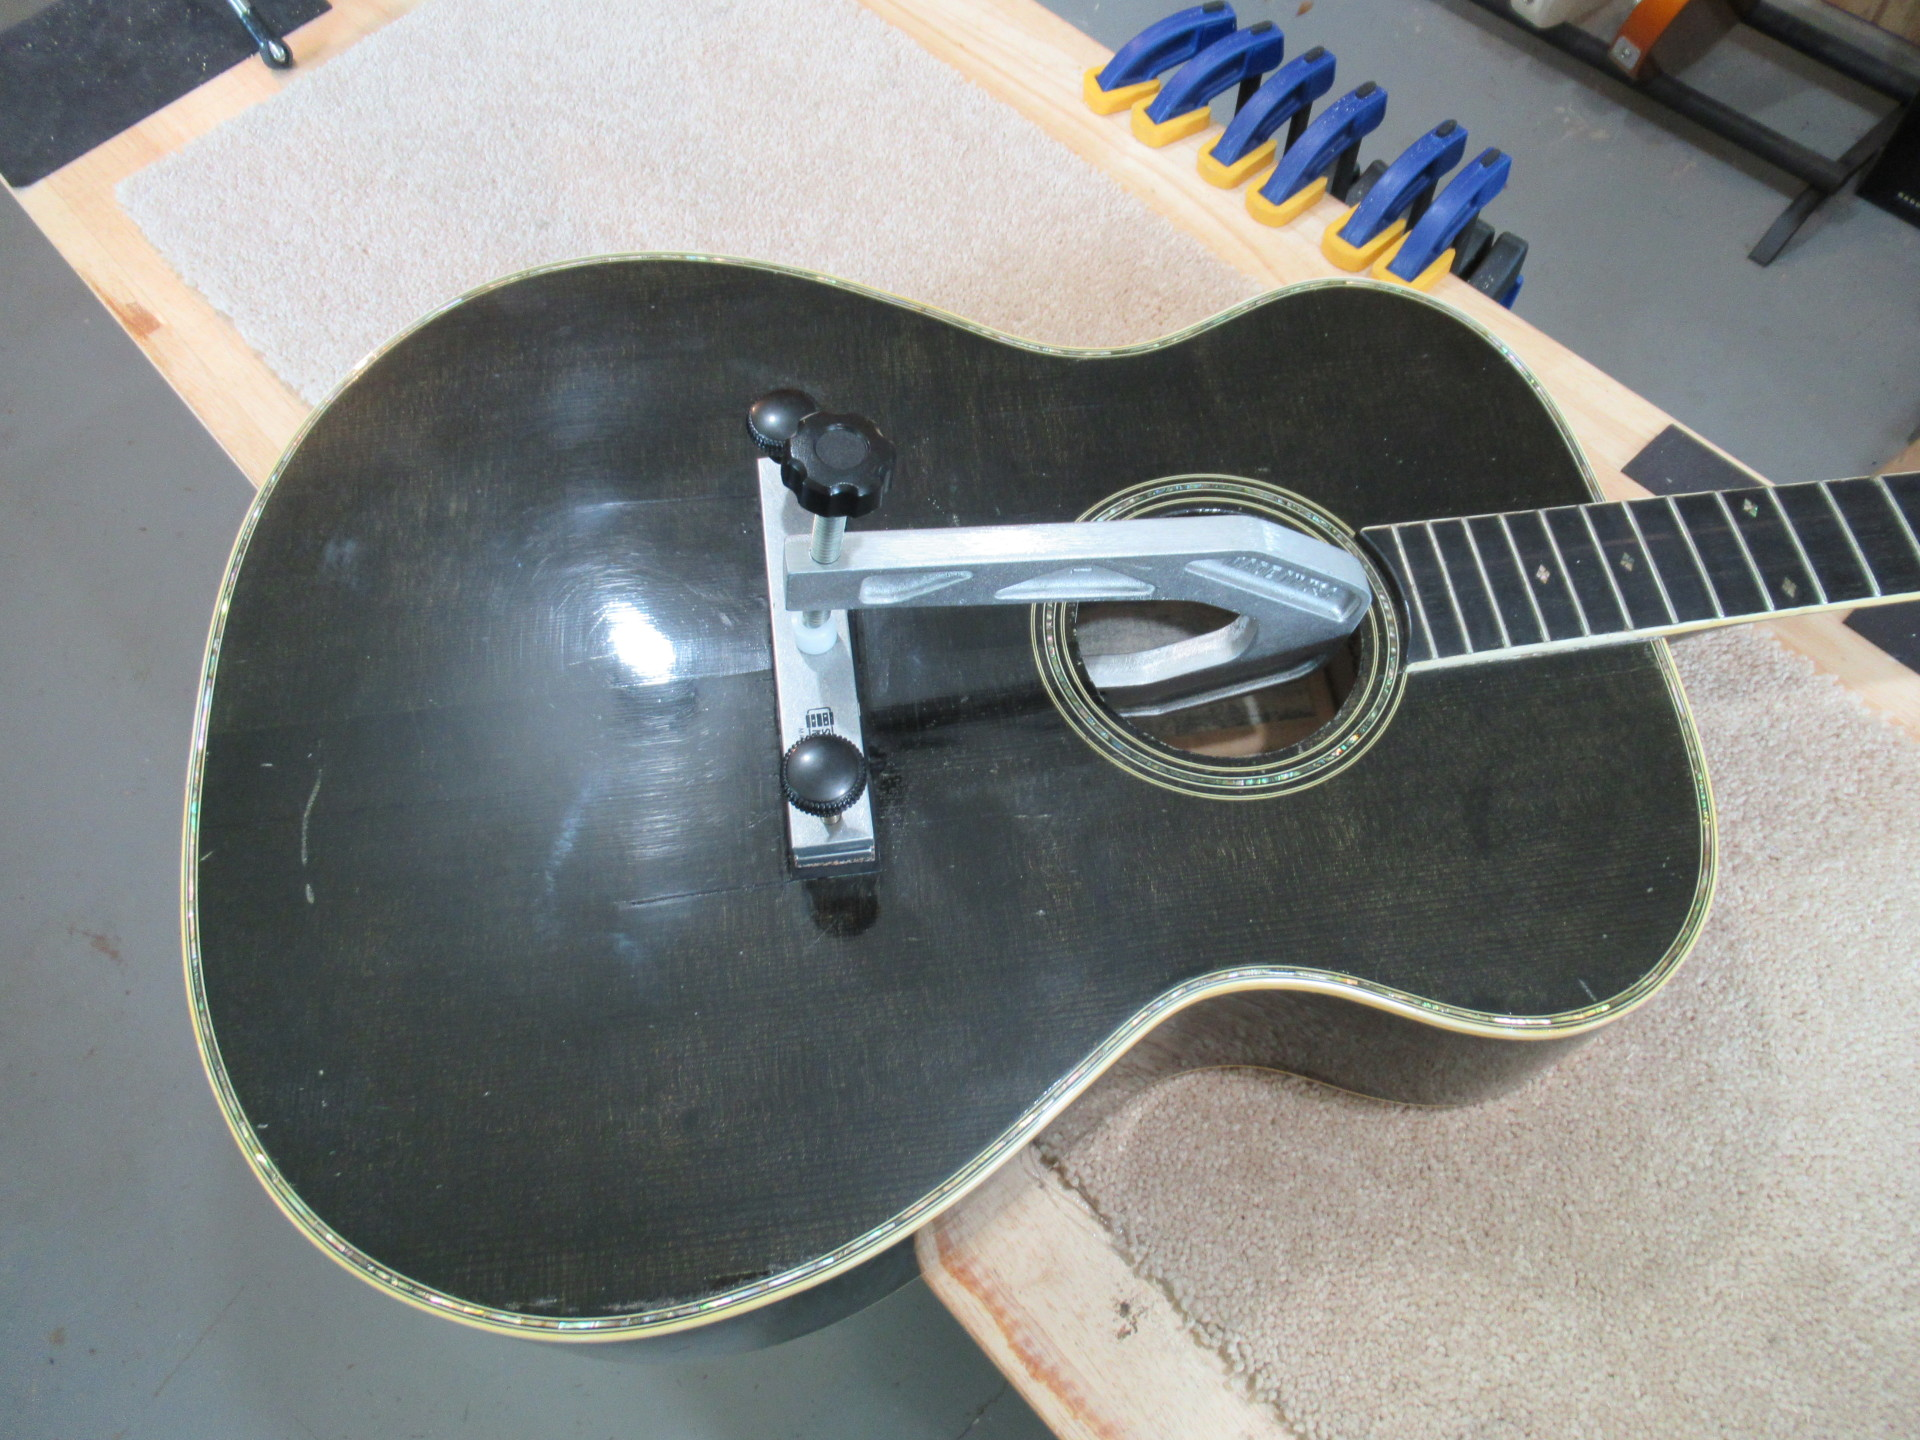 Bridge replacement on 1978 Ferrington SN#9 formerly owned by Johnny Cash at The Fret Shack